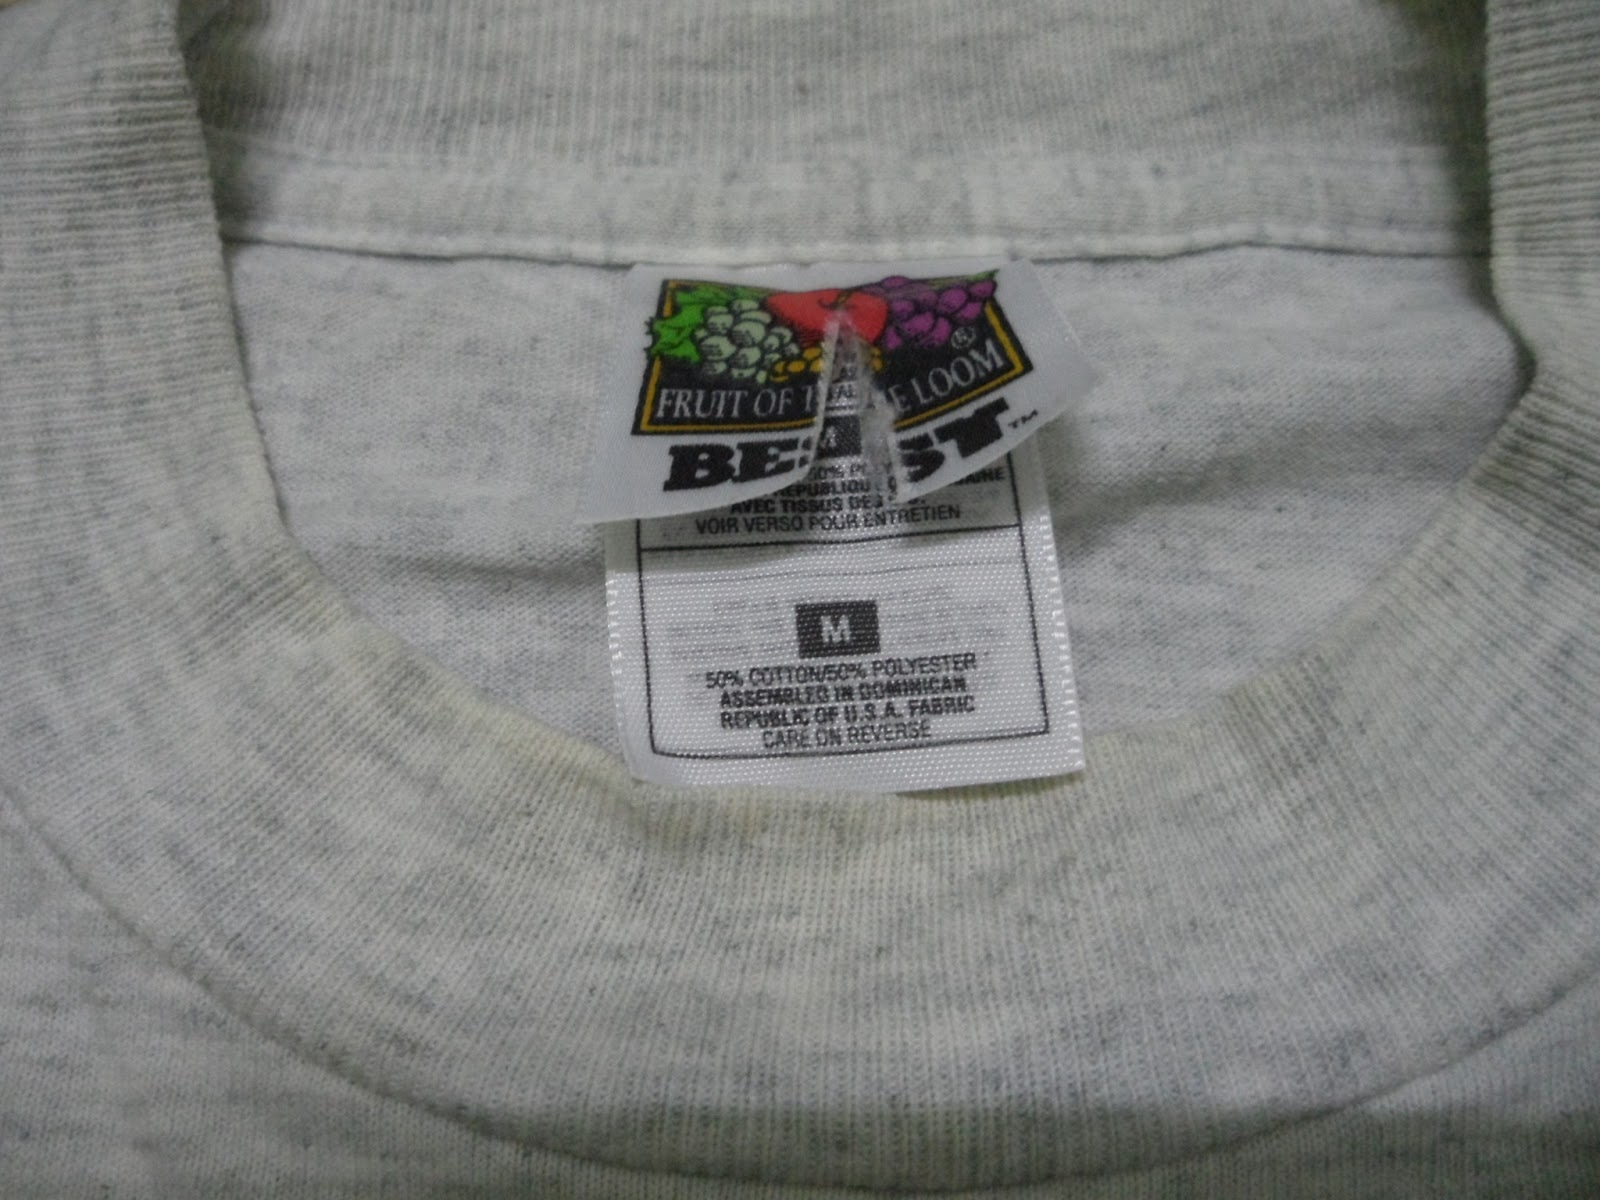 ea19189a8fa Brand Tag   Fruit of The Loom Made In   Dominican Republic Pit-to-Pit   19